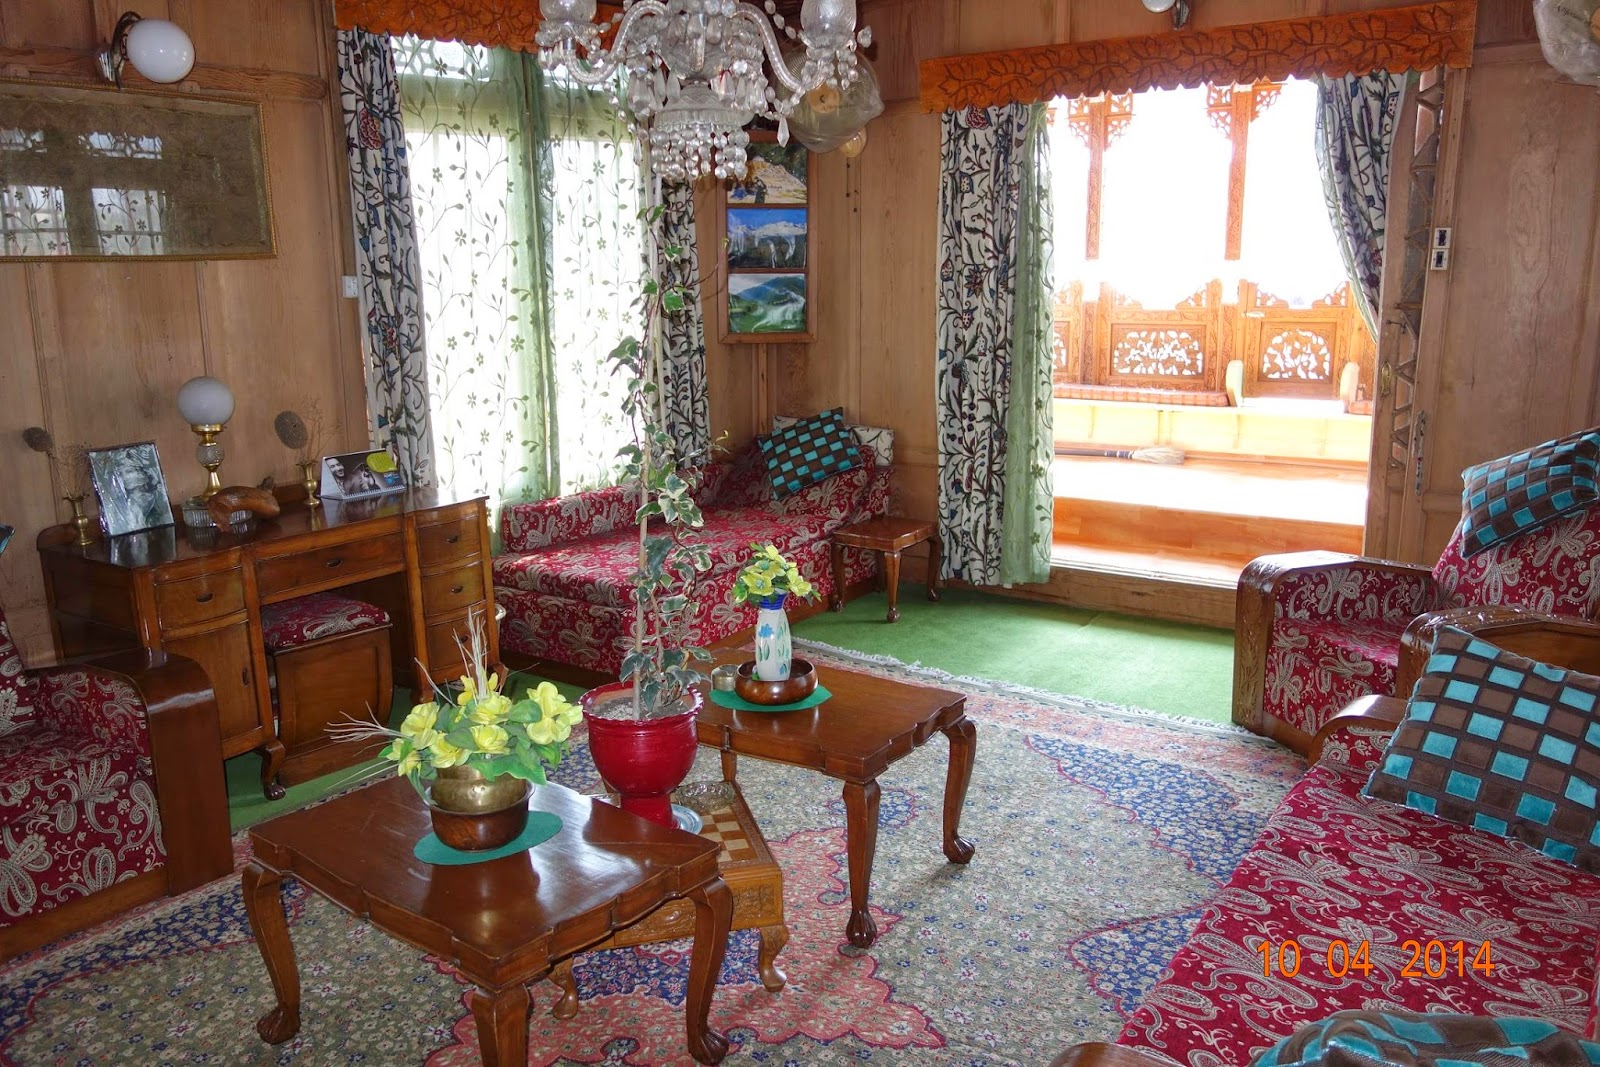 Another view of the lounge